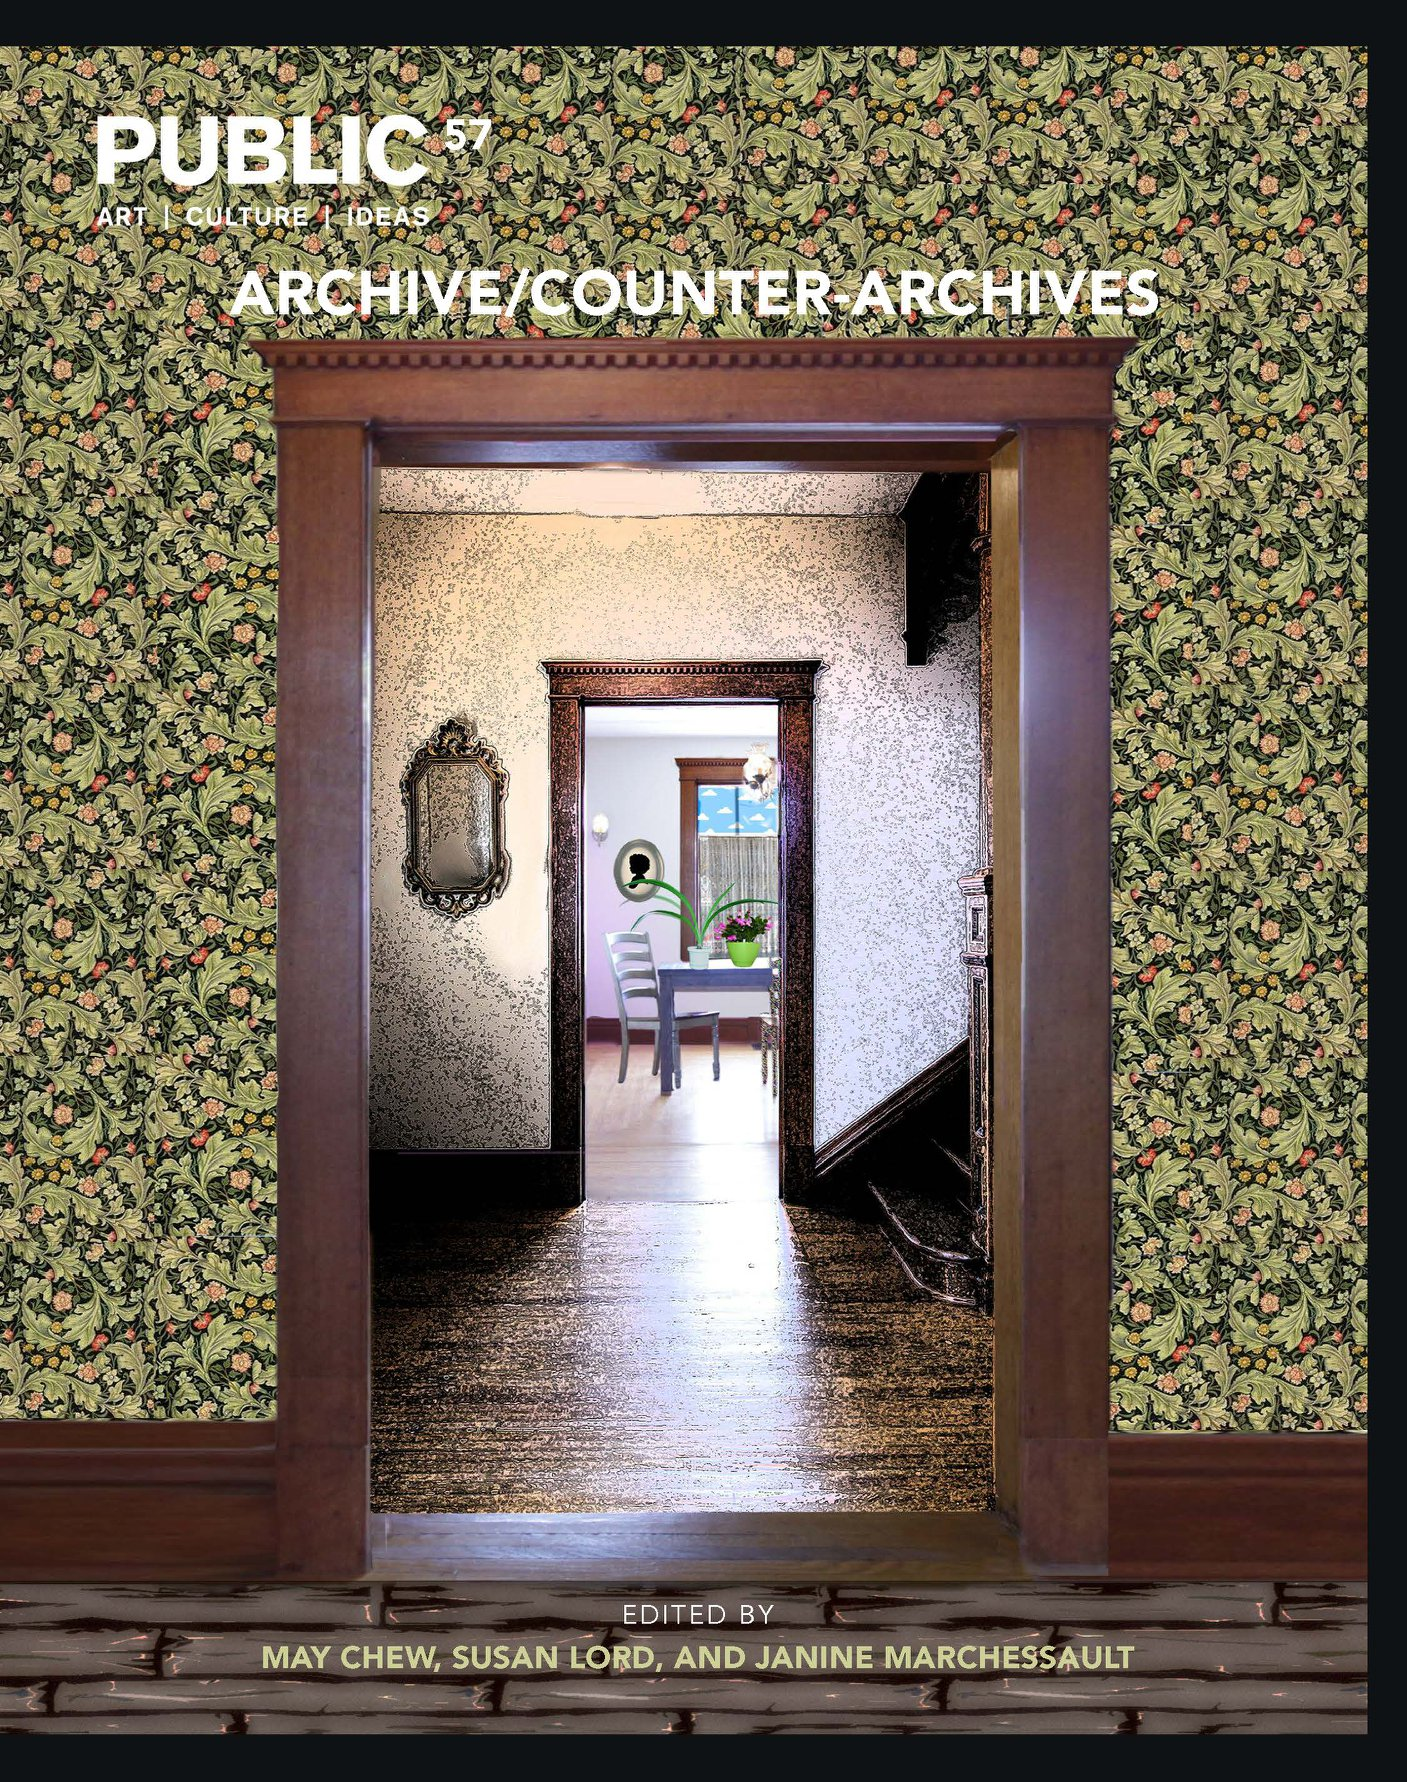 PUBLIC 57: Archive/Counter Archives